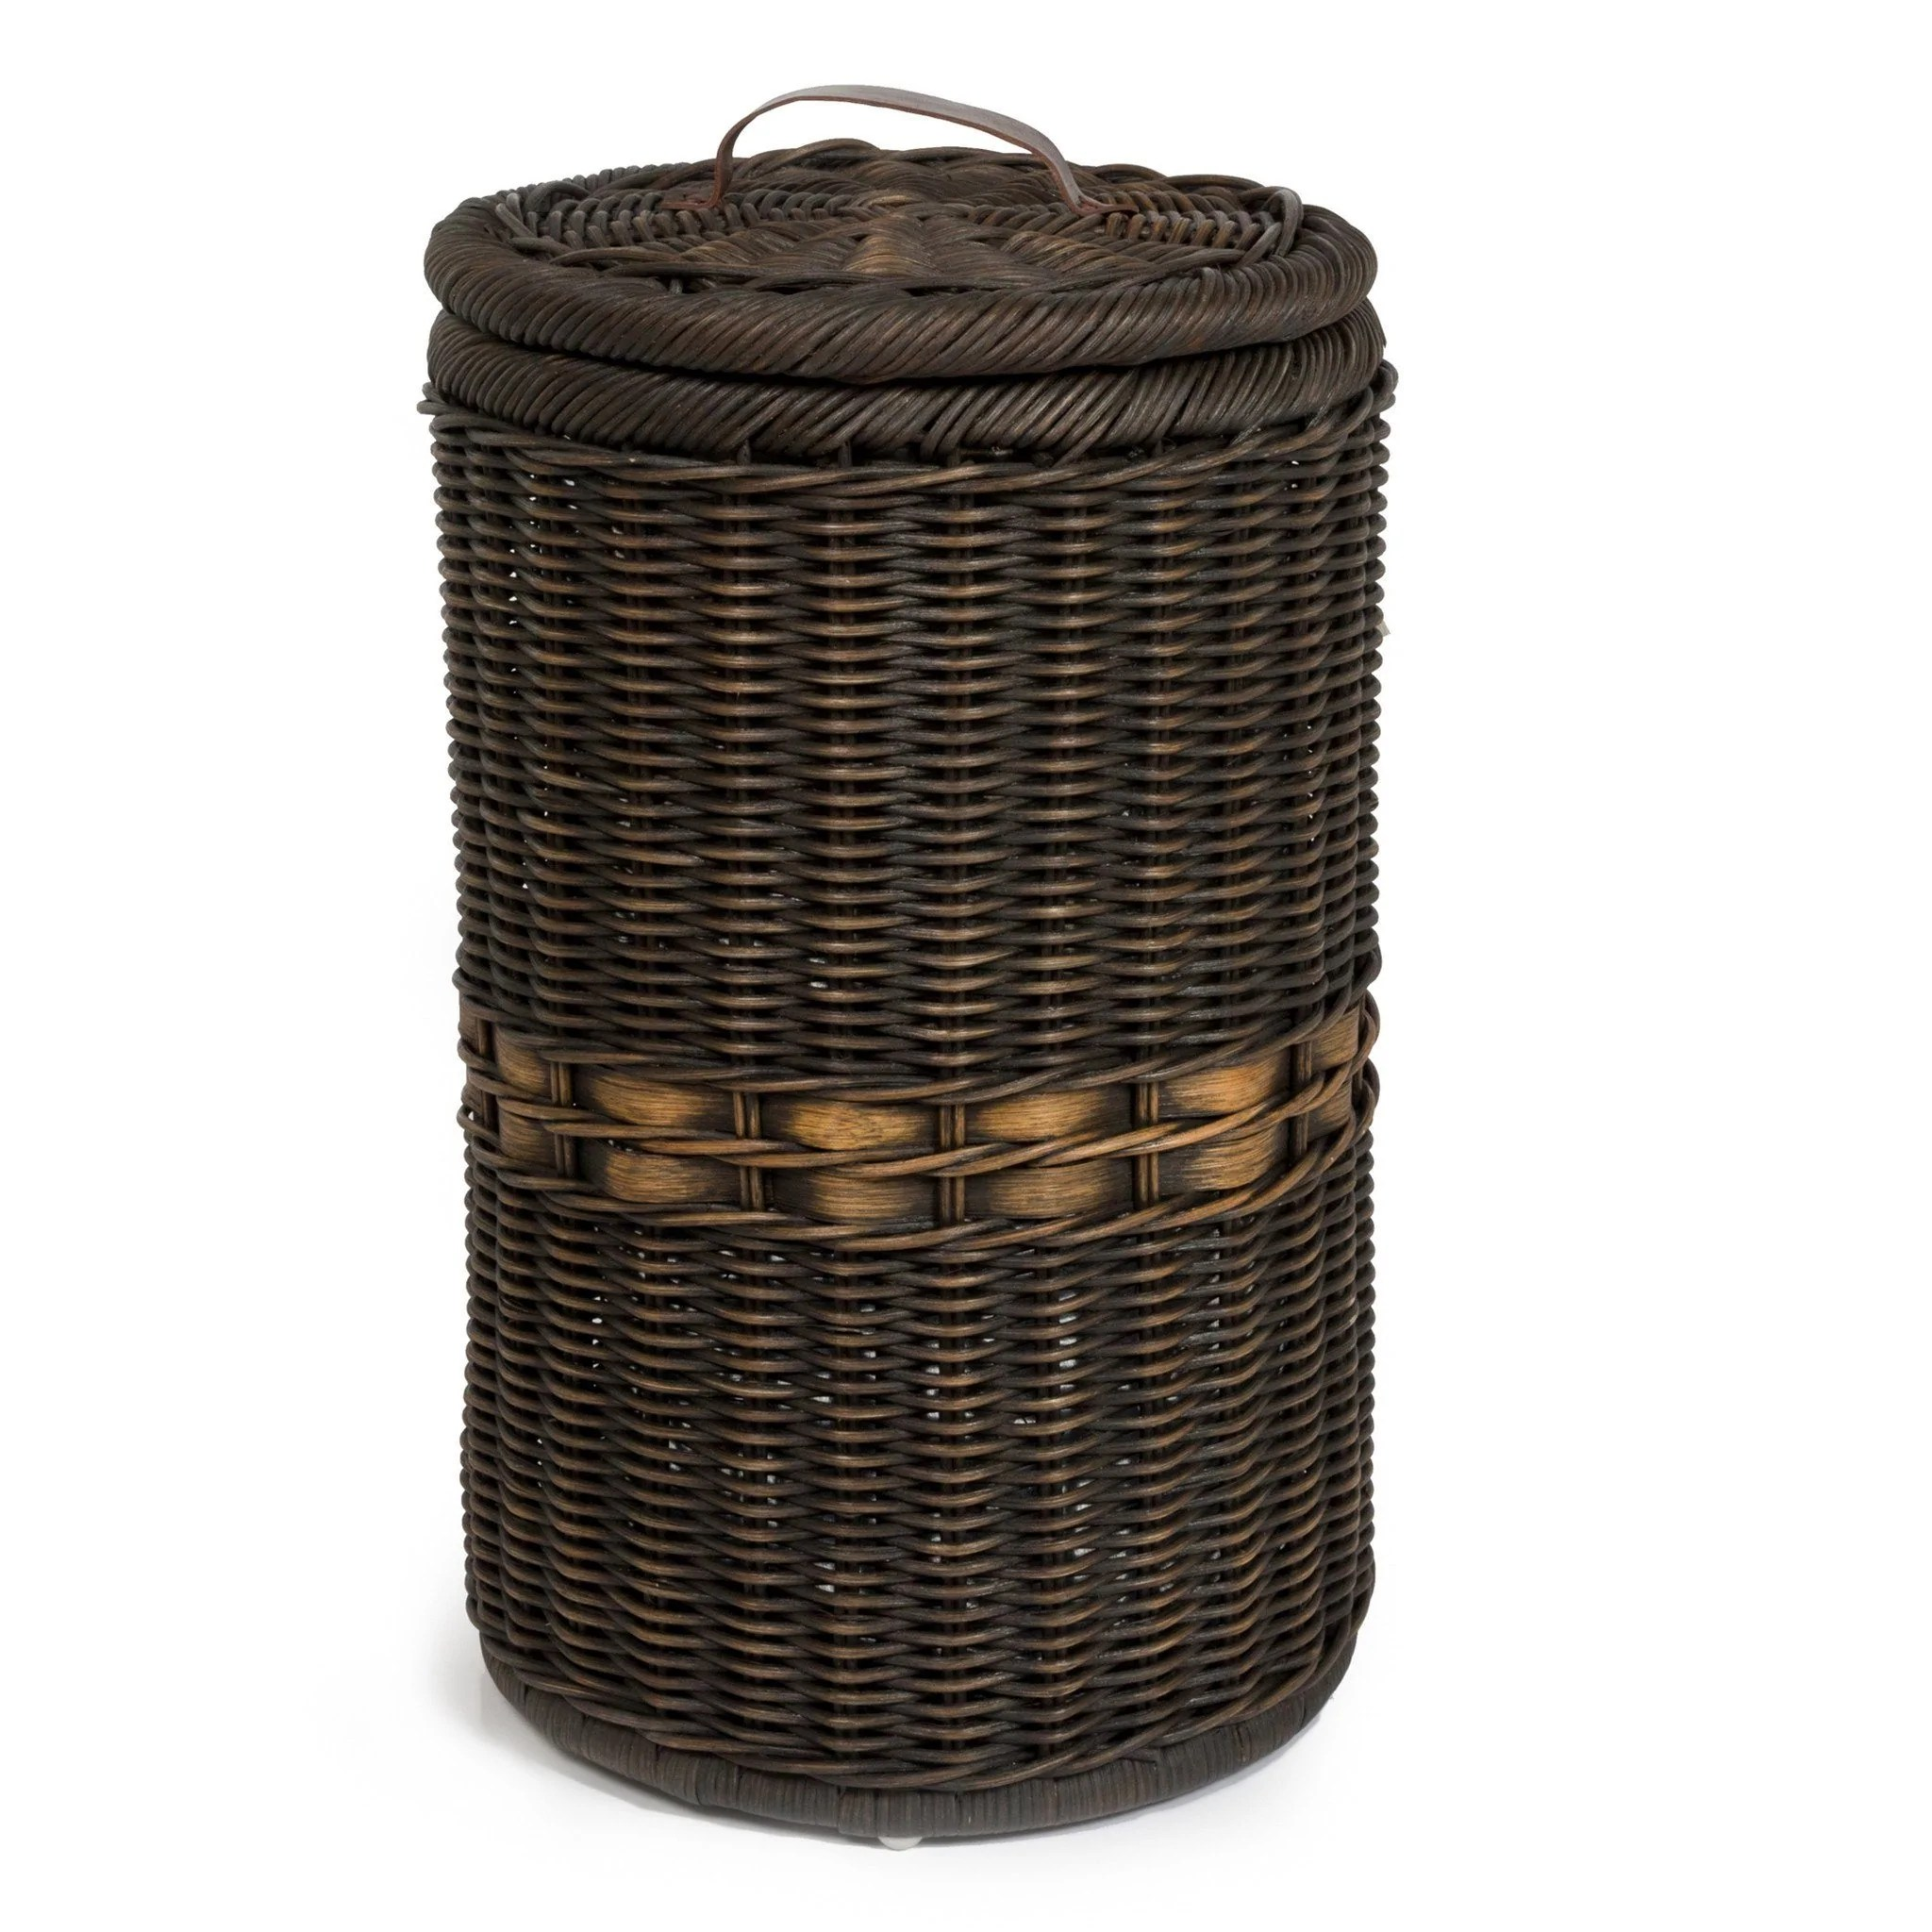 Tall Wicker Waste Basket With Metal Liner - Lady